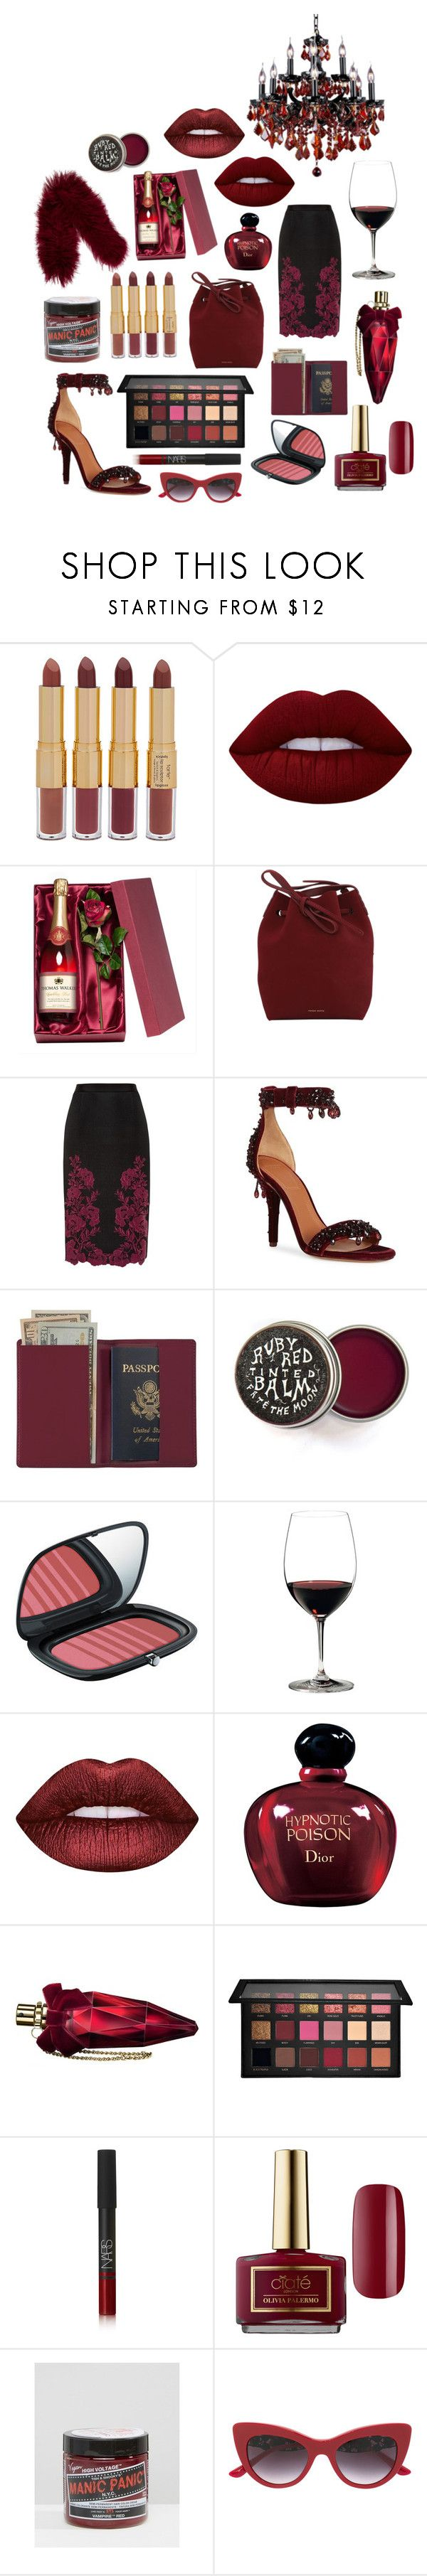 """""""Untitled #250"""" by wittethefox ❤ liked on Polyvore featuring tarte, Lime Crime, Mansur Gavriel, Ted Baker, Givenchy, Royce Leather, Marc Jacobs, Riedel, Christian Dior and Dita Von Teese"""